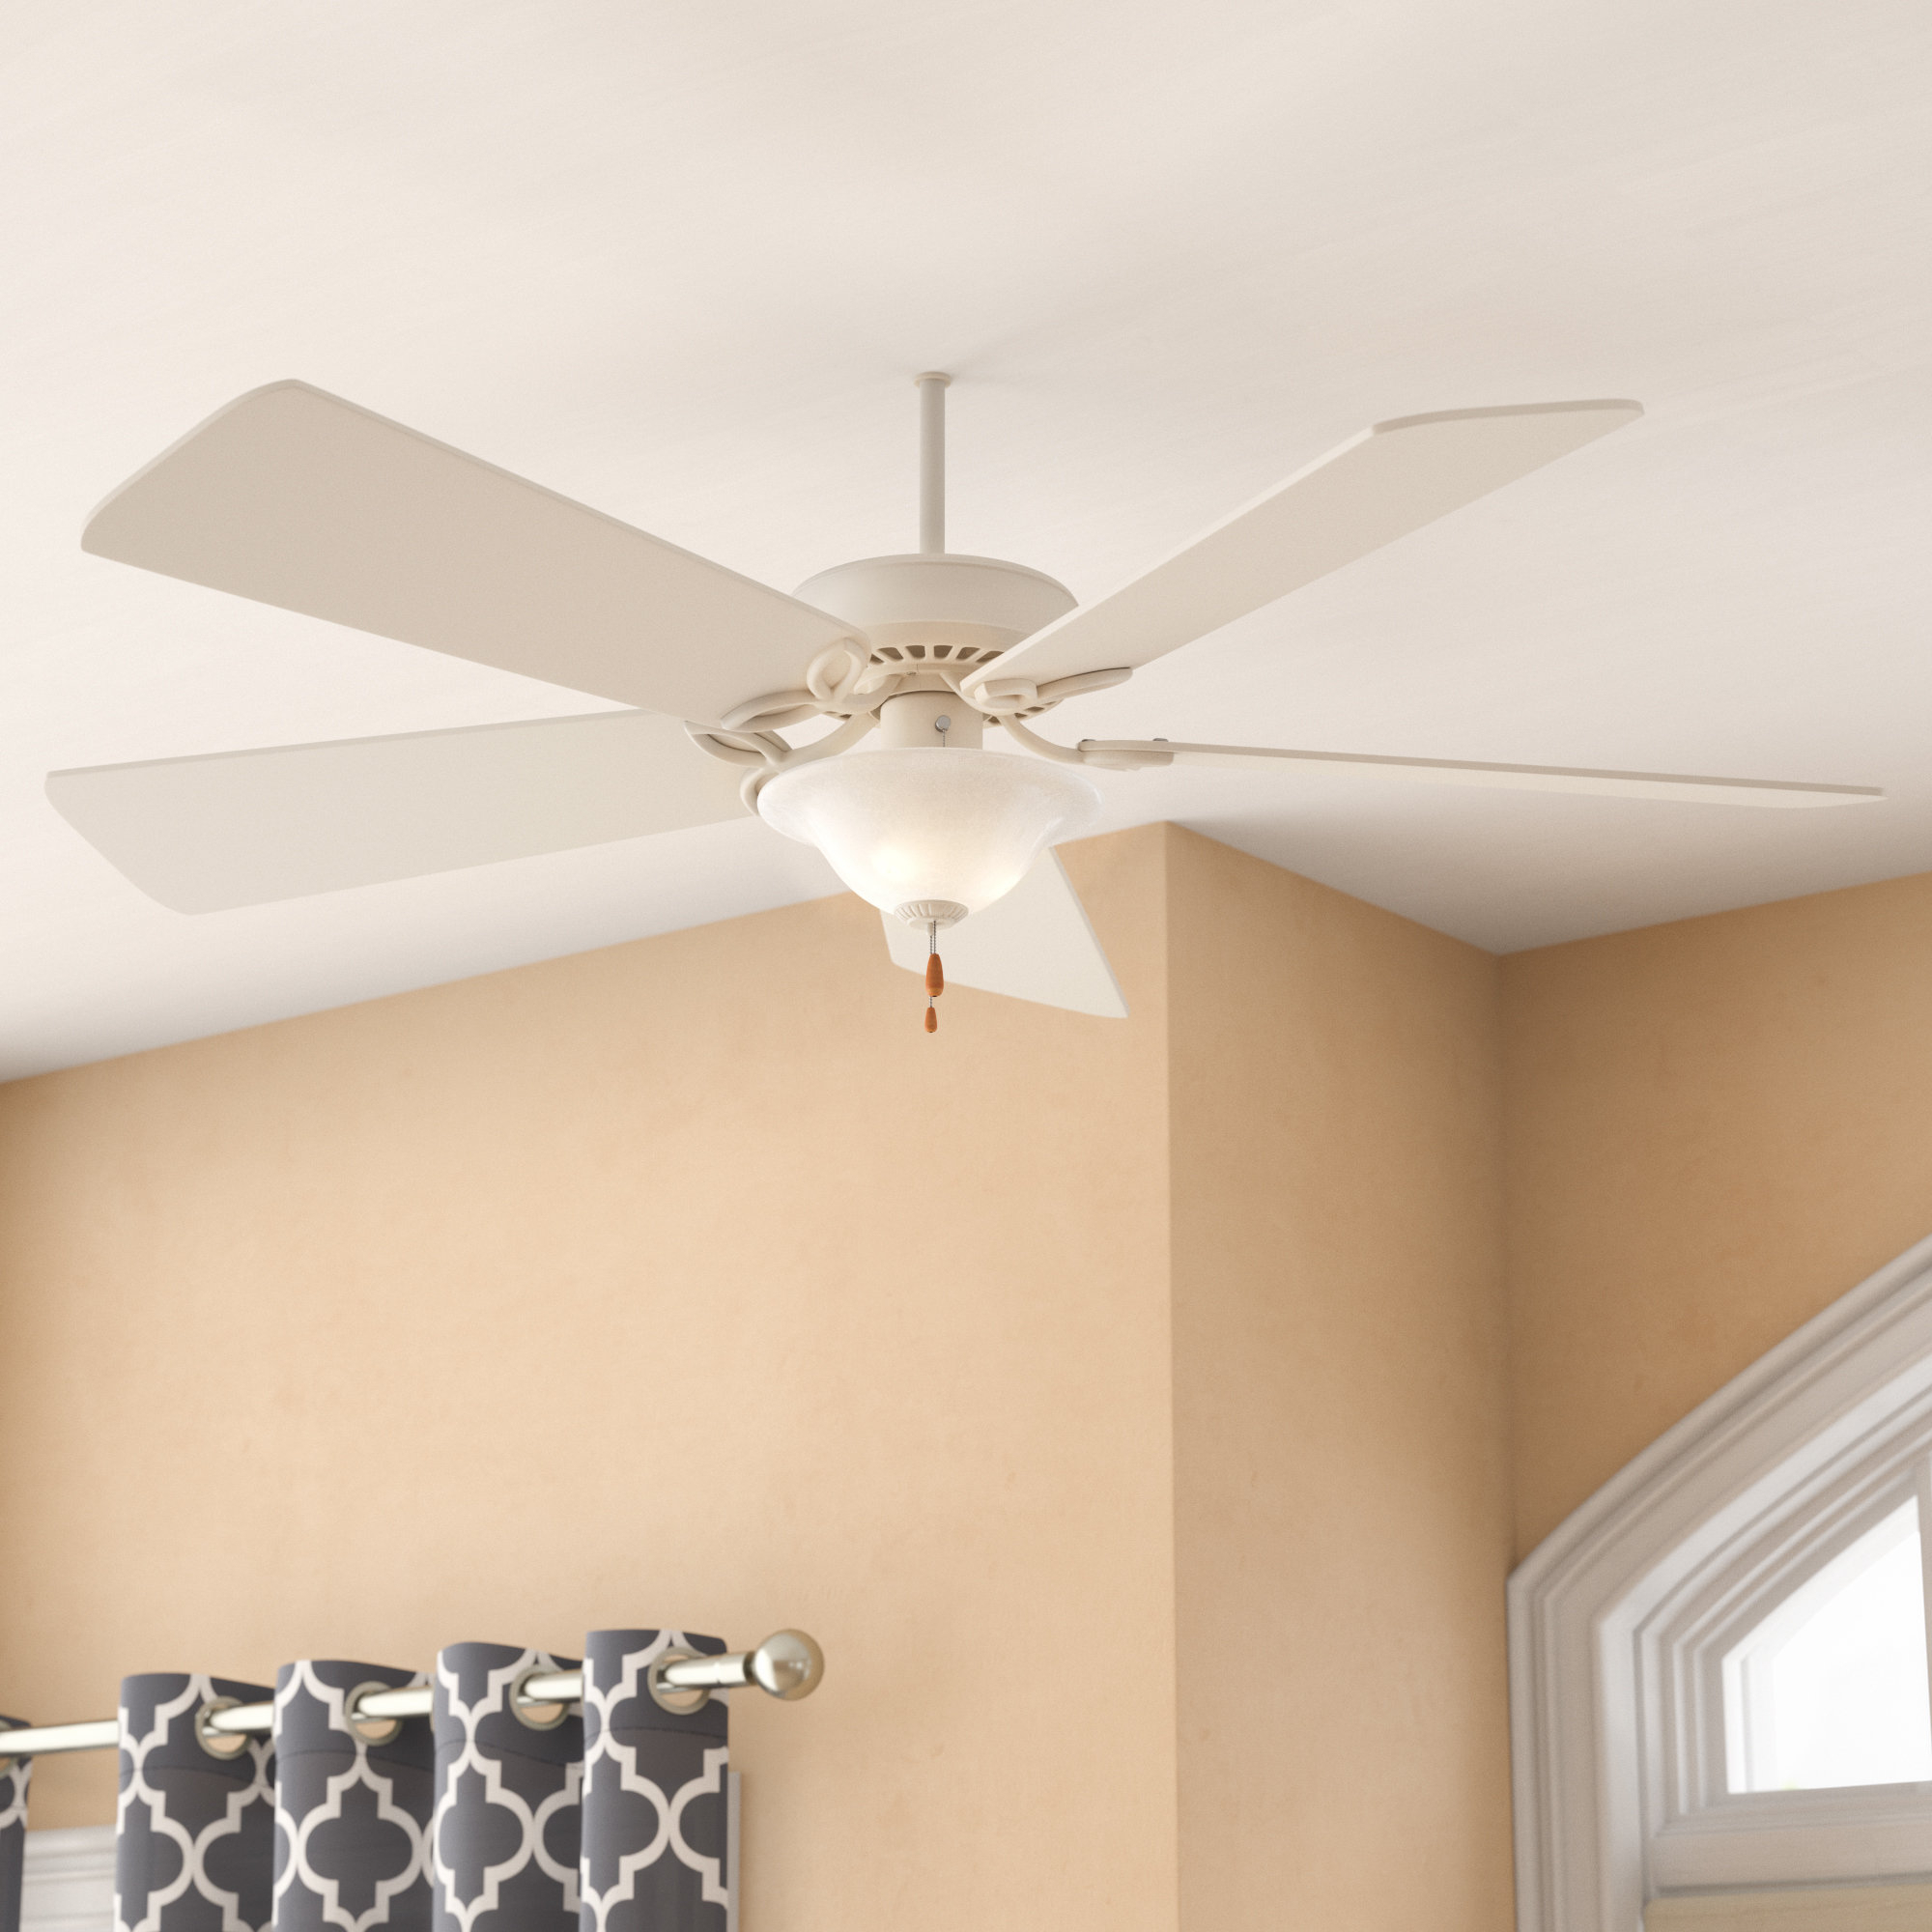 "50"" Eliora 5 Blade Ceiling Fan, Light Kit Included With Current Eliora 5 Blade Ceiling Fans (View 3 of 20)"